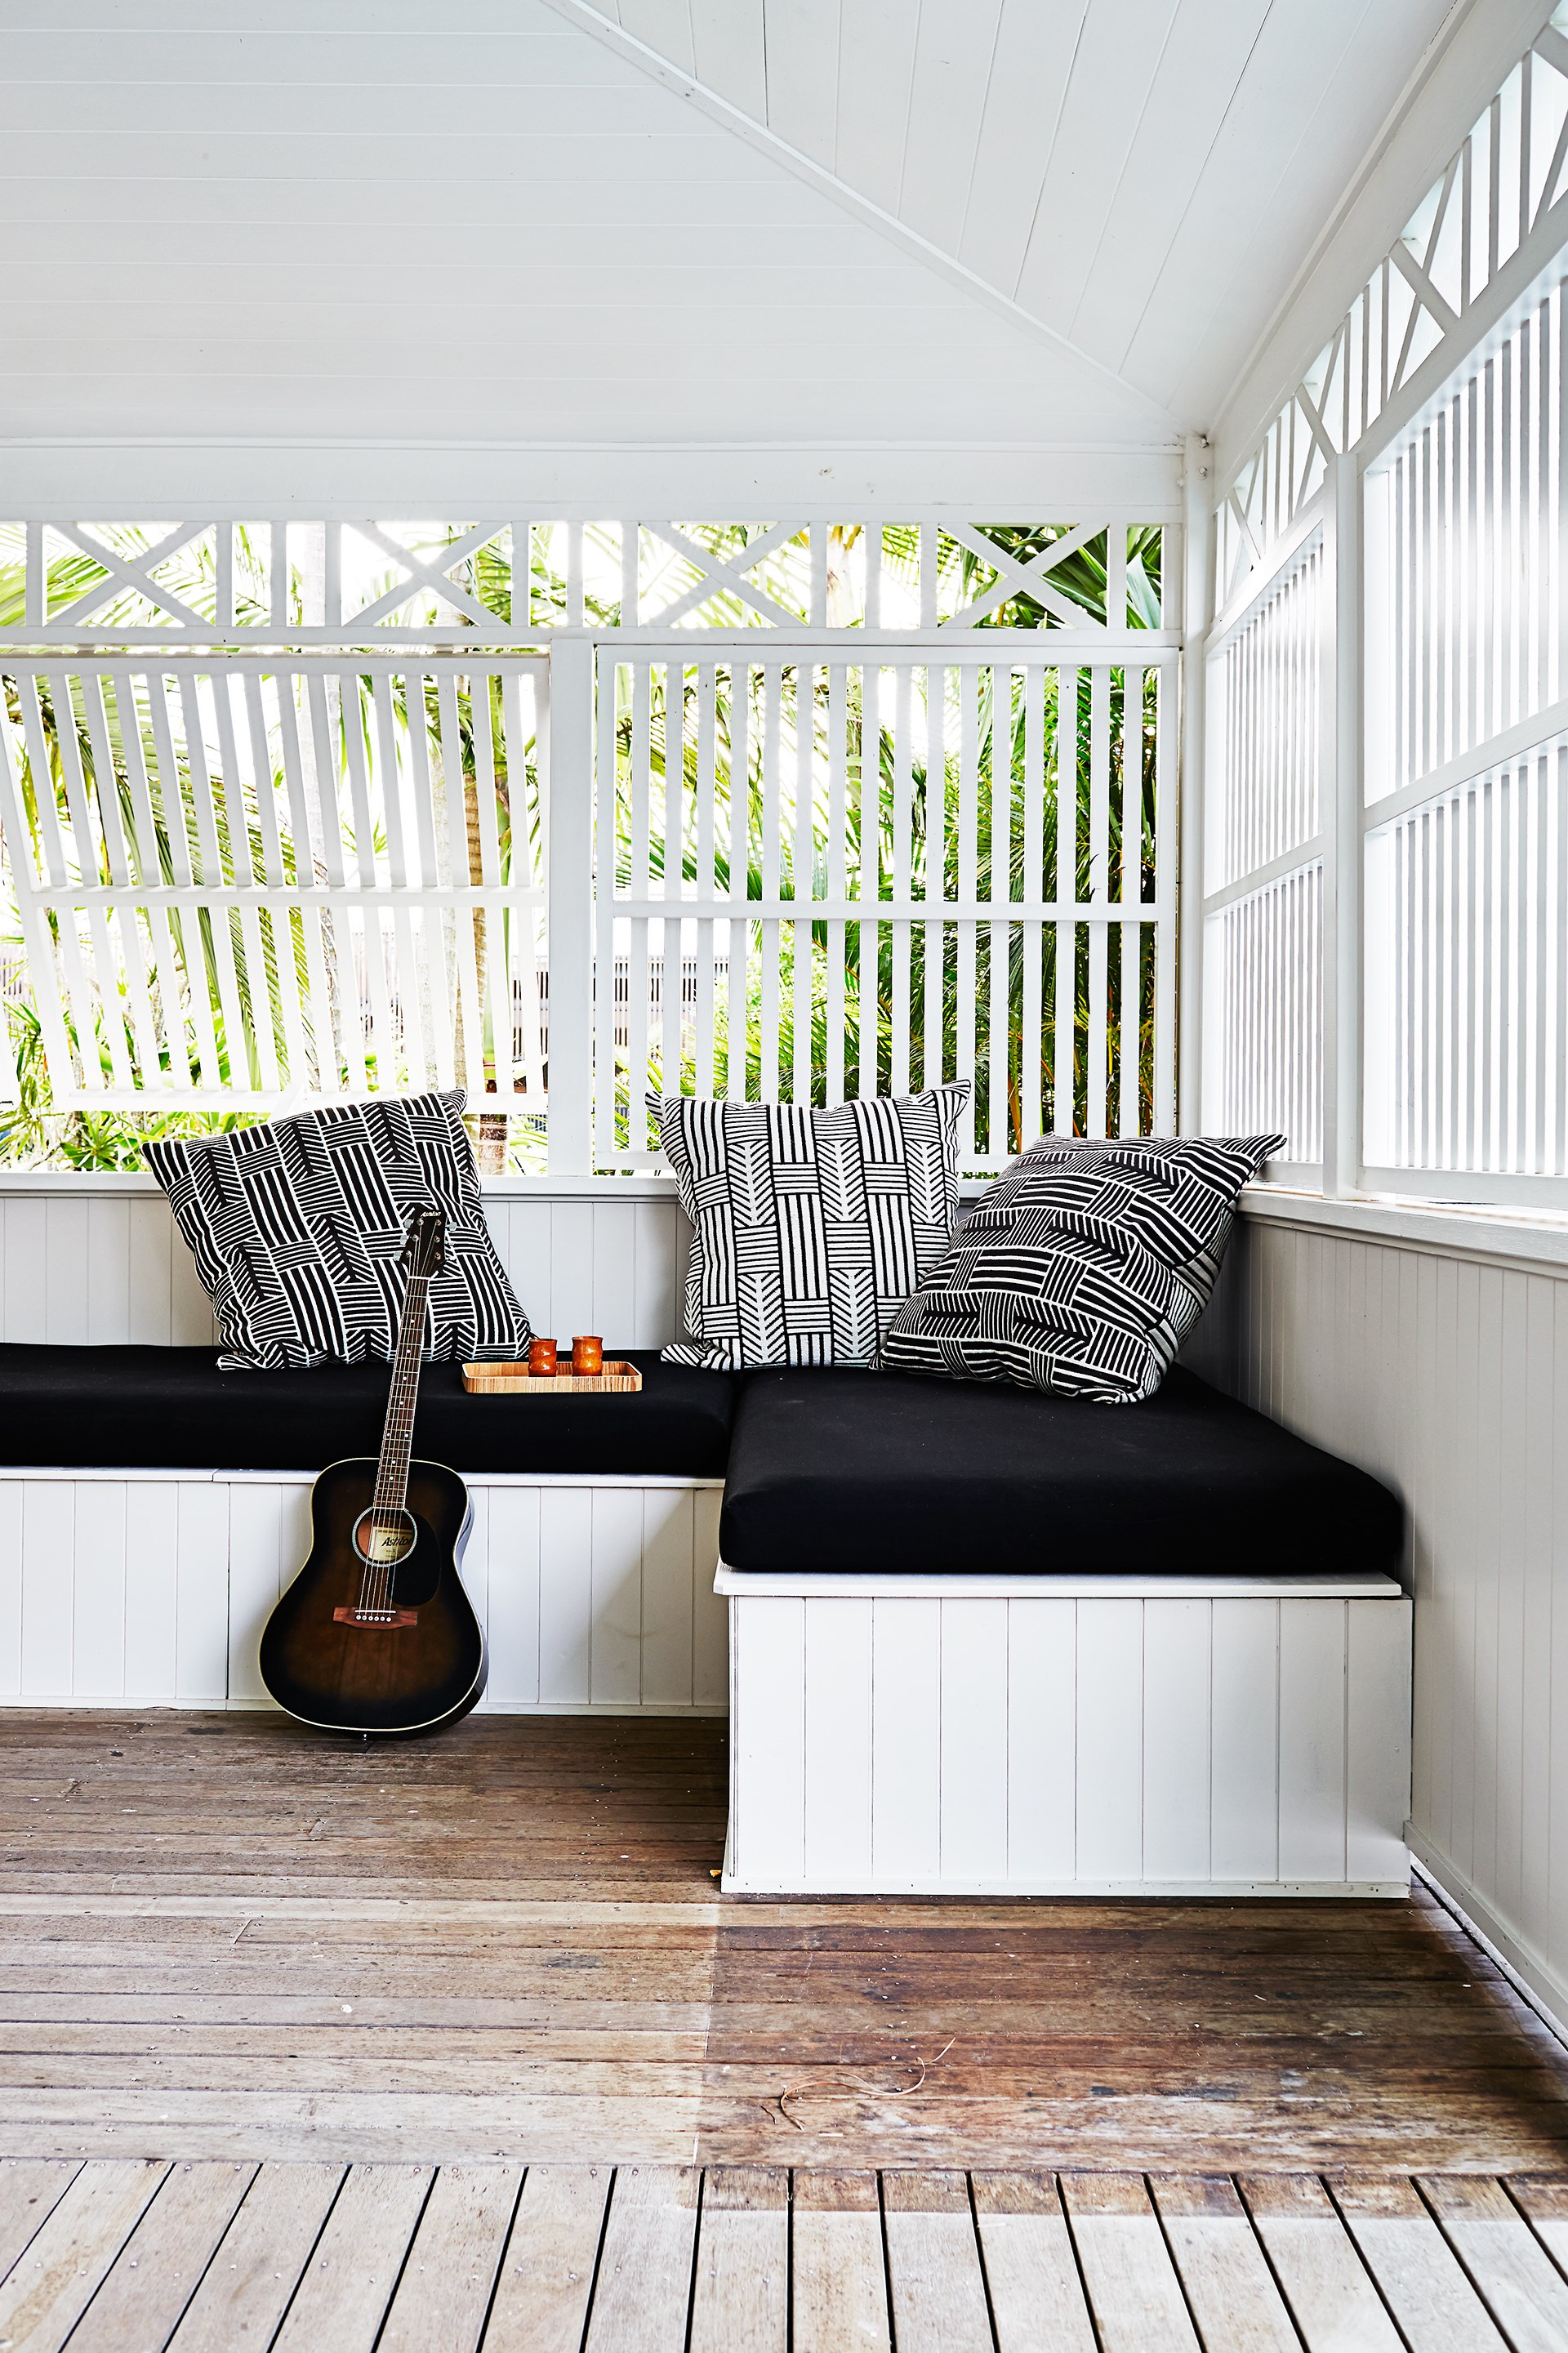 "The deck of this [Byron Bay beach house](http://www.homestolove.com.au/gallery-kimberly-and-stephens-byron-bay-beach-house-1660|target=""_blank"") sports a built-in day bed; ideal for an afternoon snooze or practicing the guitar. *Photo:* Alicia Taylor."